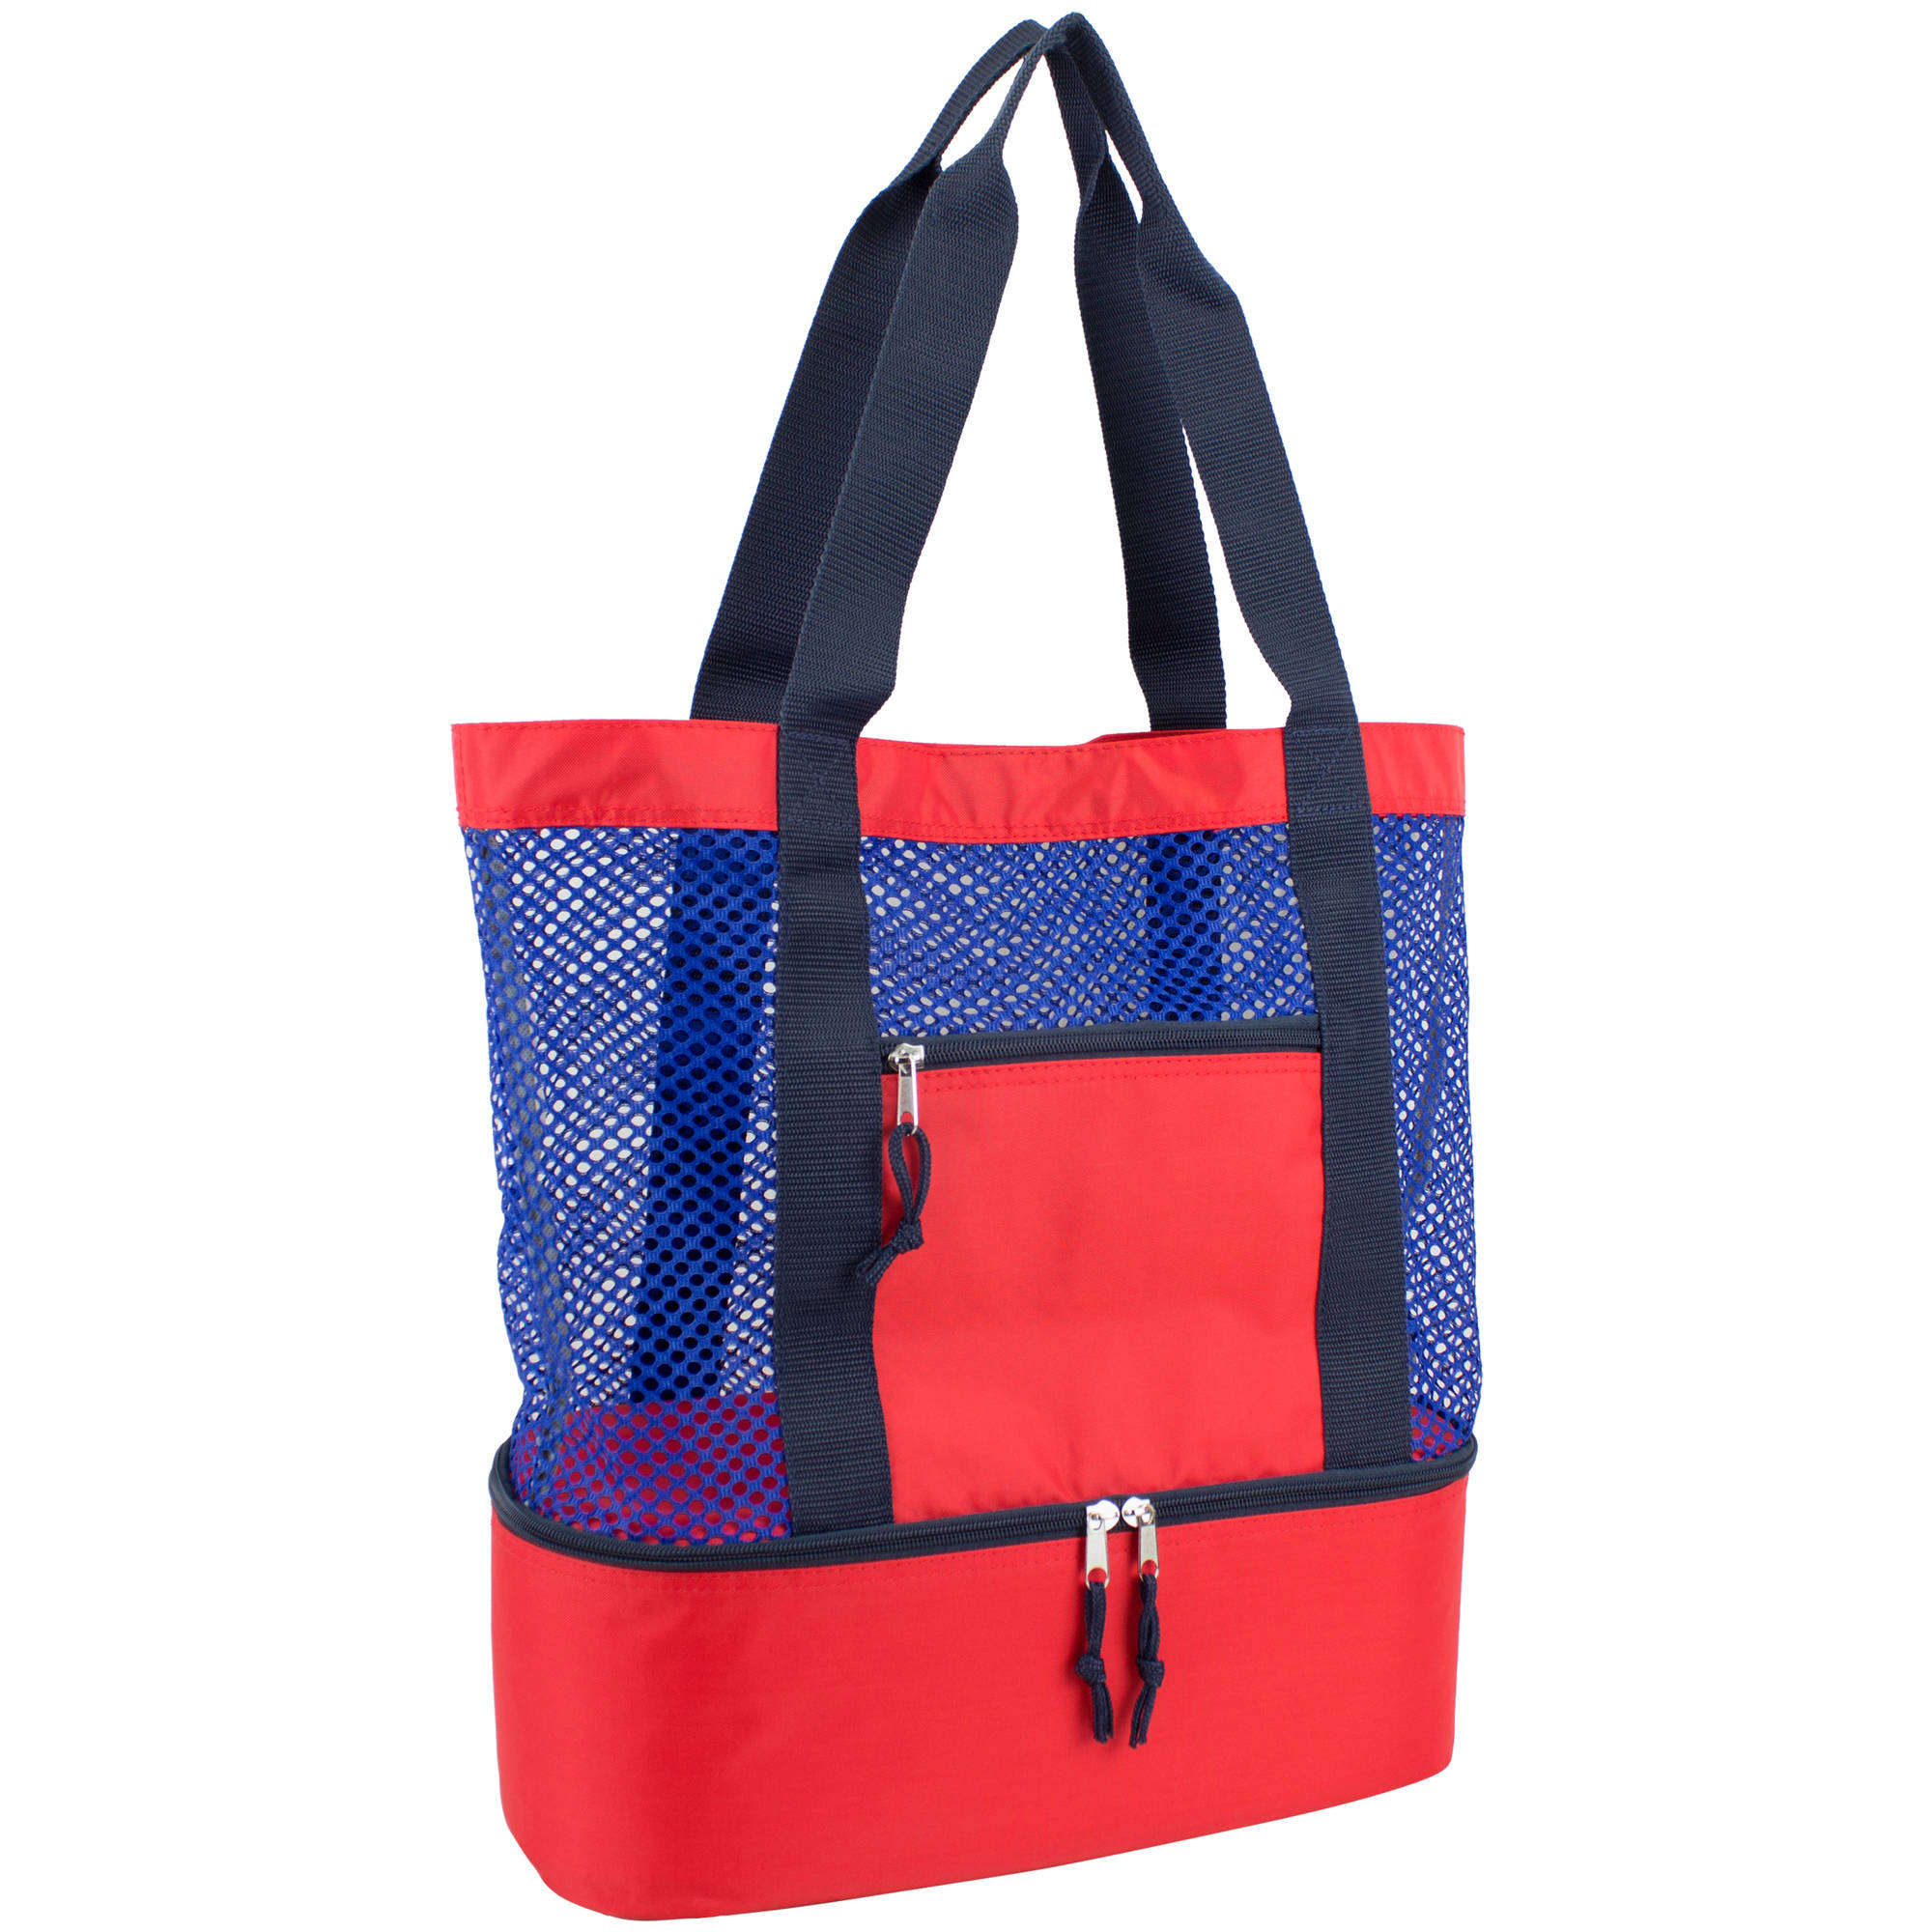 Eastsport Cooler Beach Tote Bag - Walmart.com